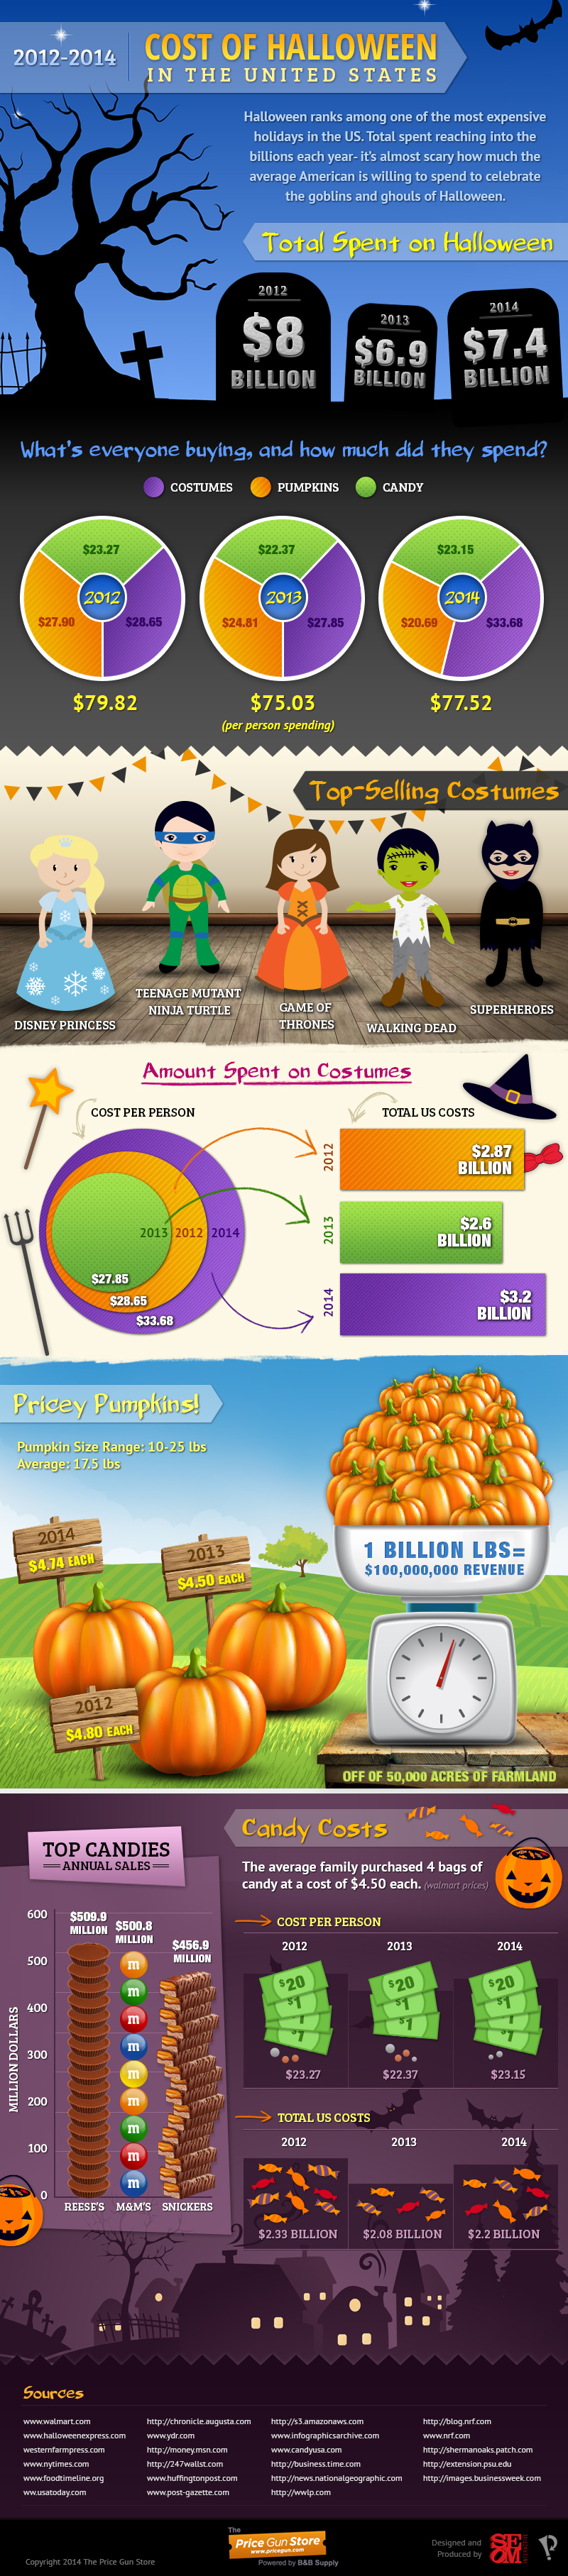 Cost of Halloween in the United States